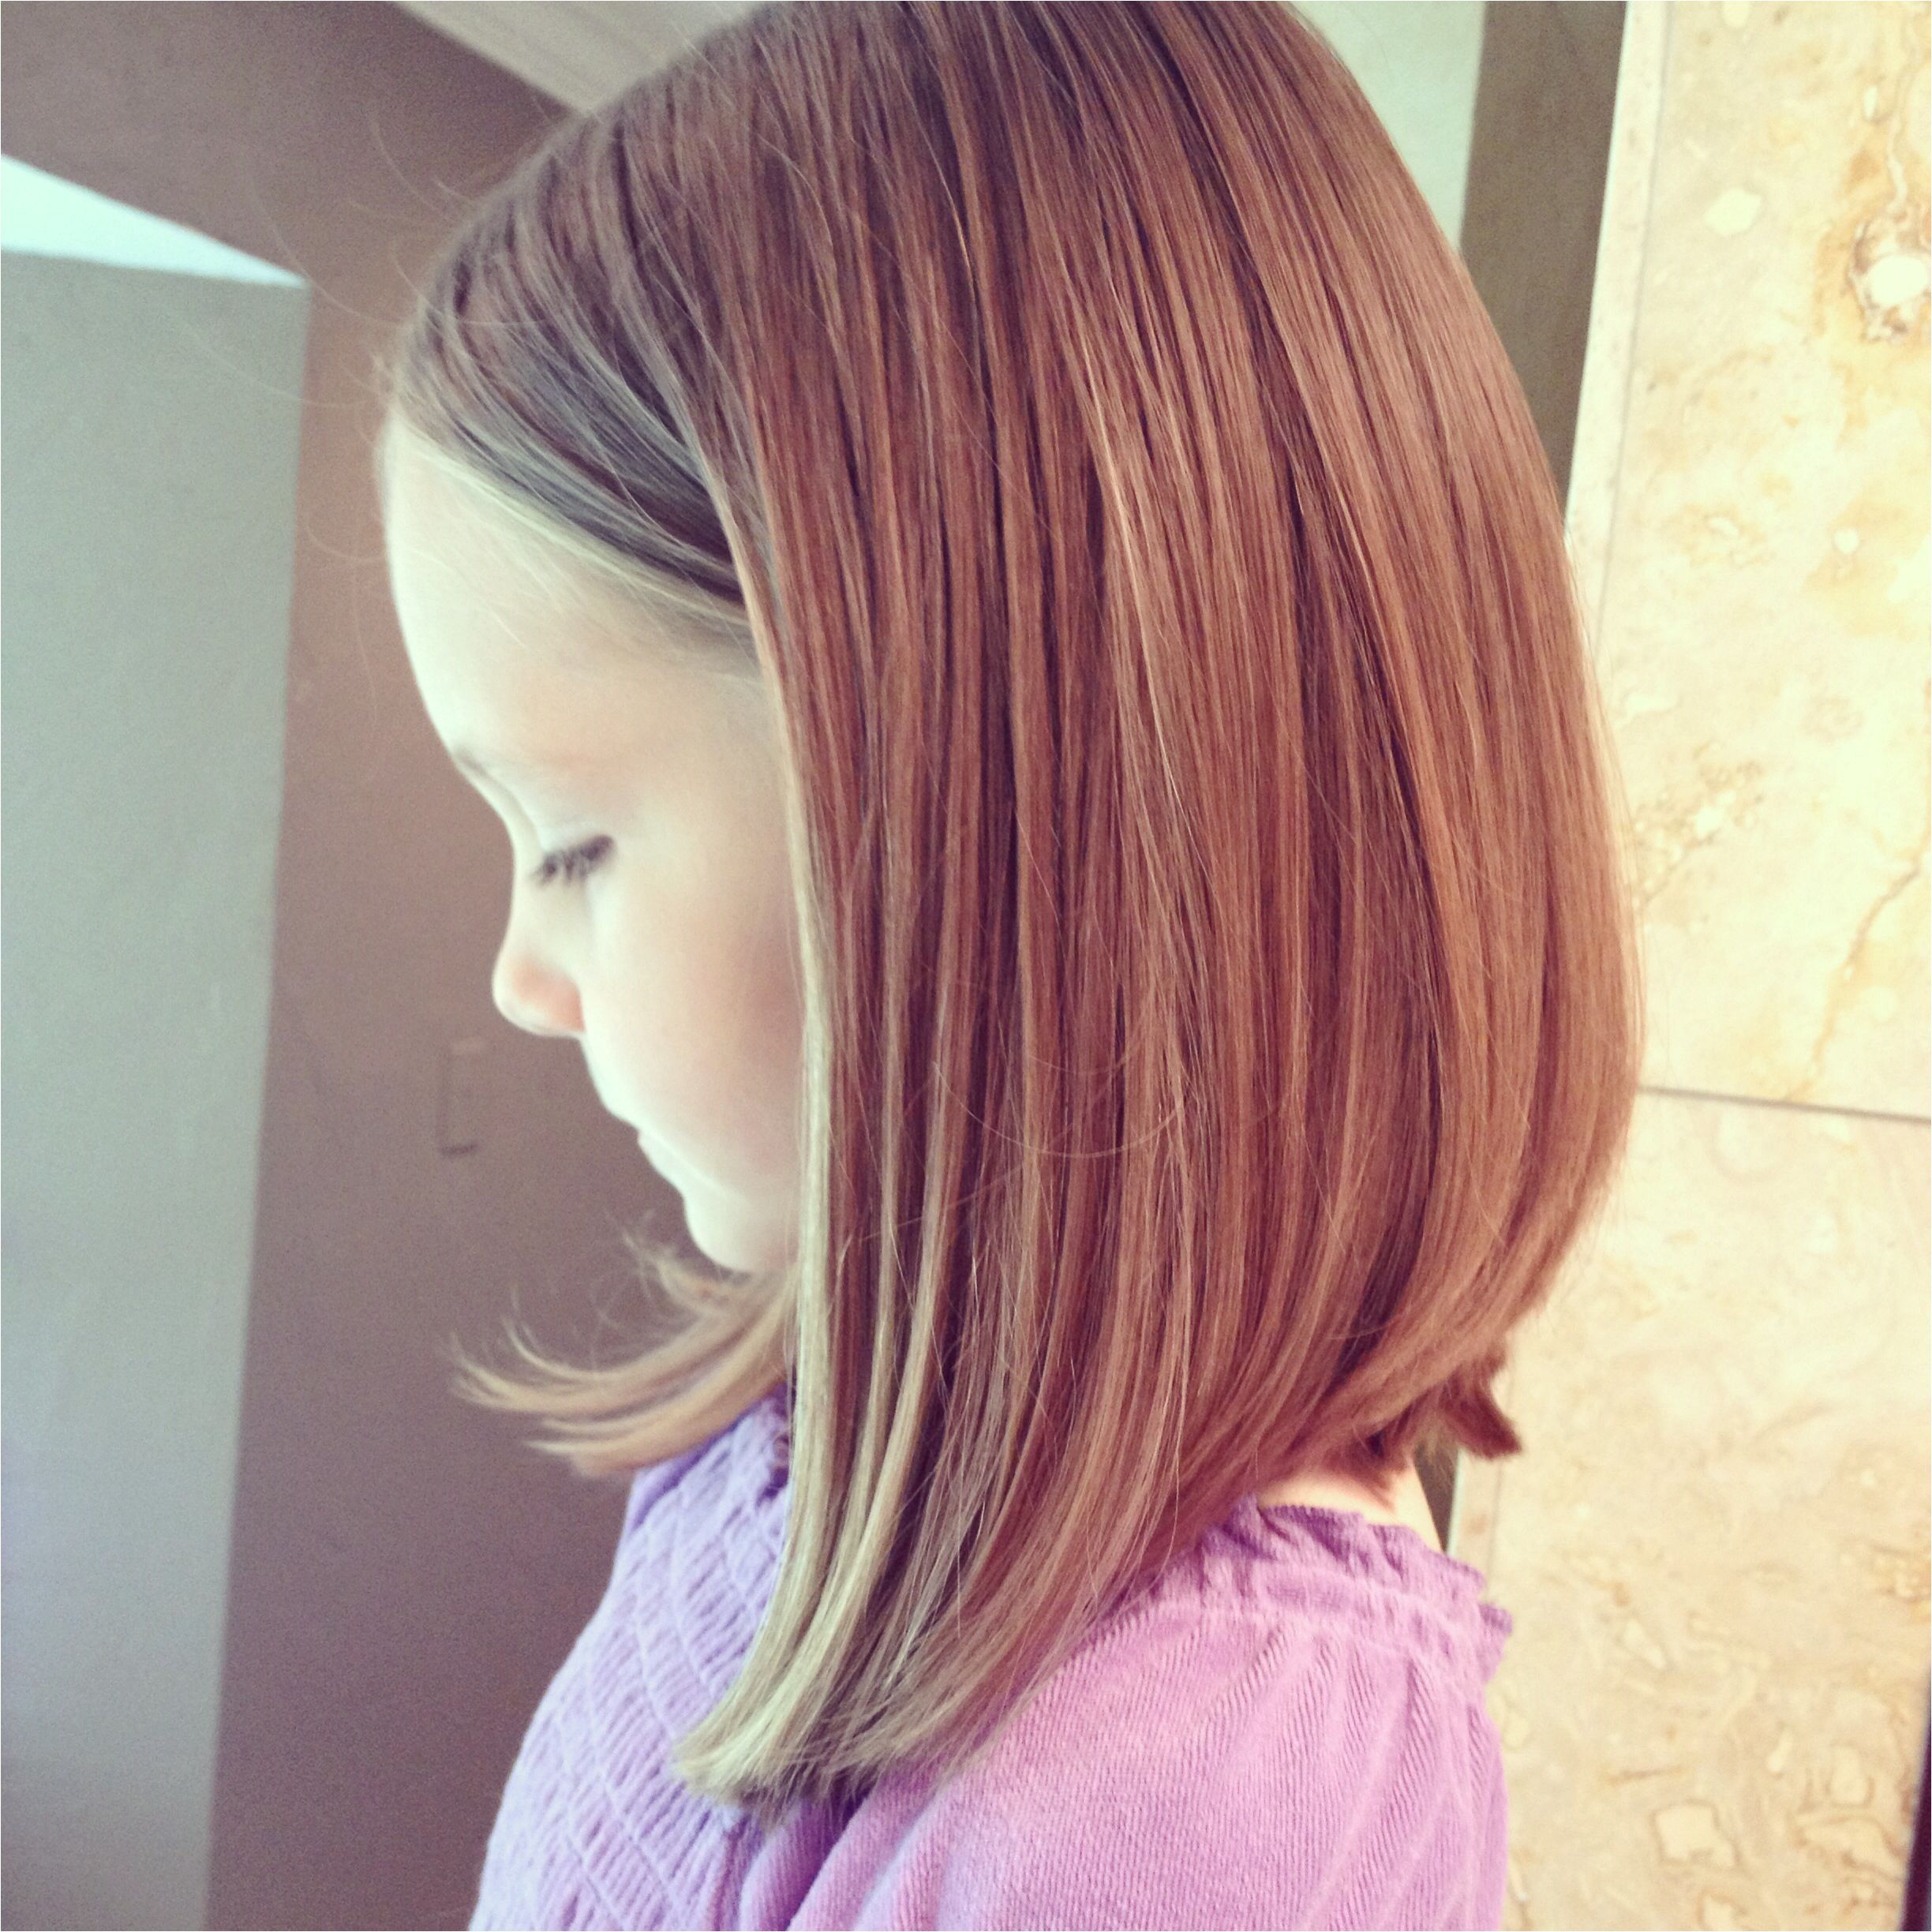 13 Year Old Hairstyles for Girls 9 Best and Cute Bob Haircuts for Kids Kids Haircuts